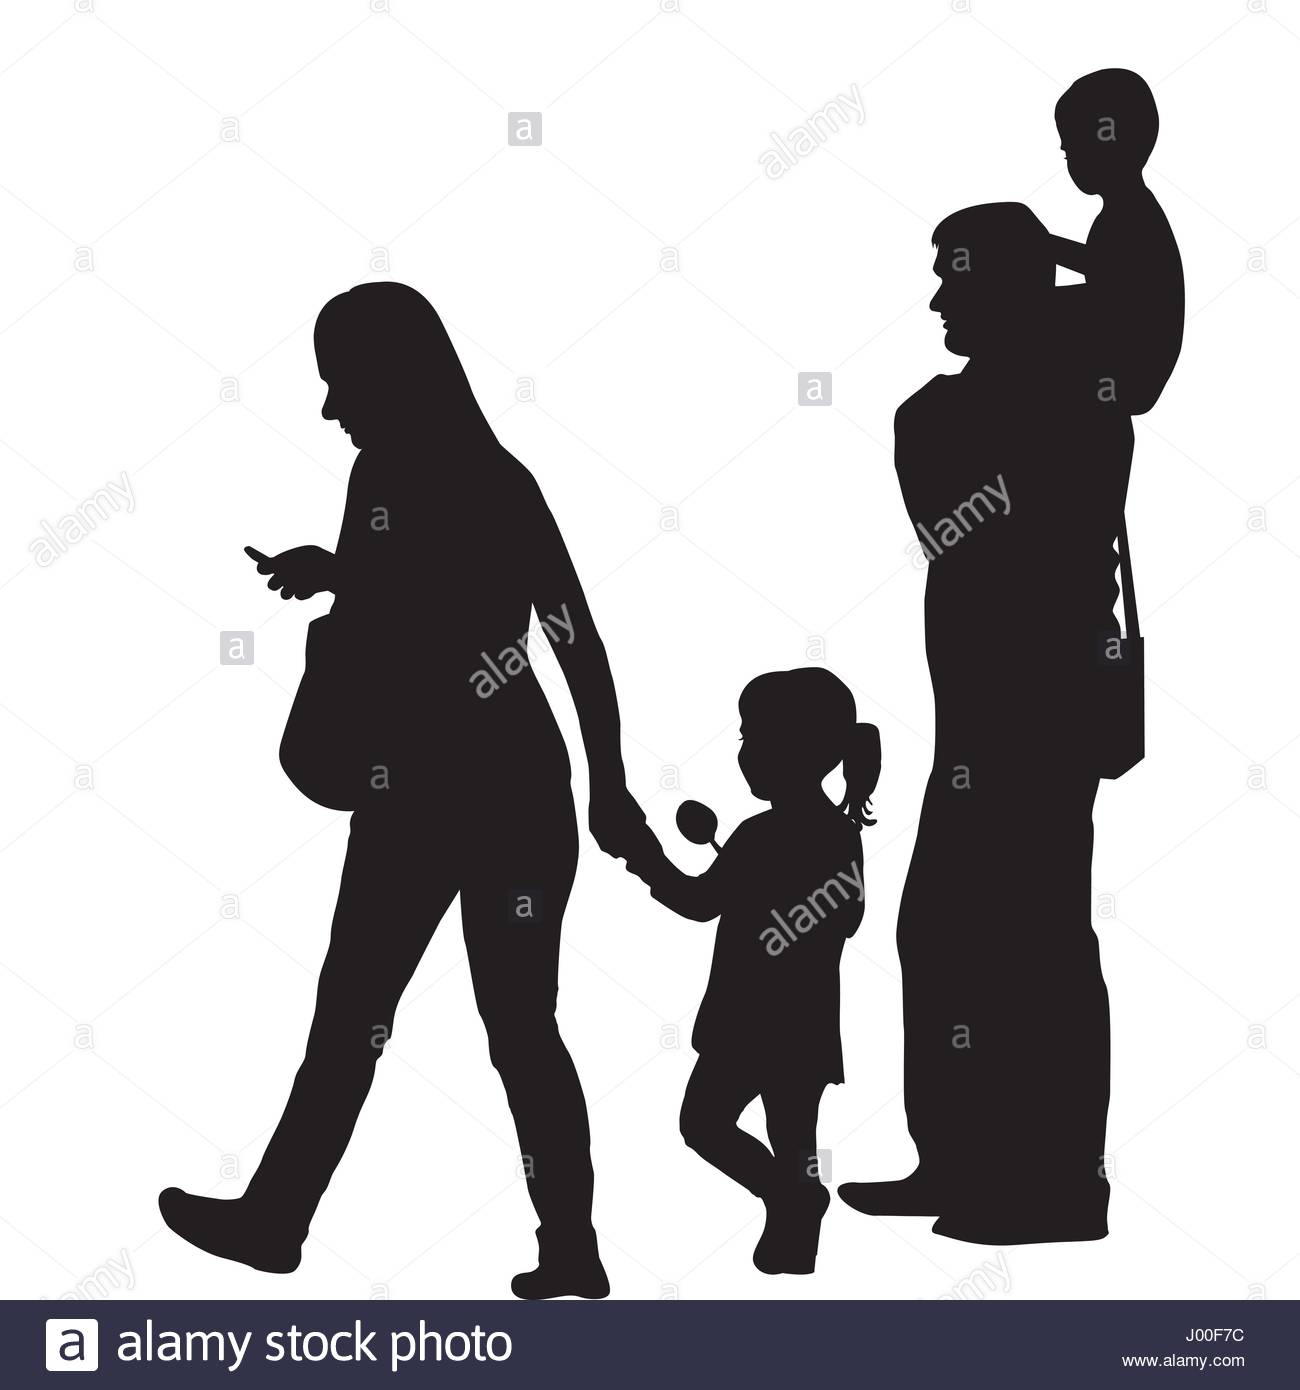 modern family silhouette with two children stock vector art rh alamy com family tree silhouette vector family silhouette vector art